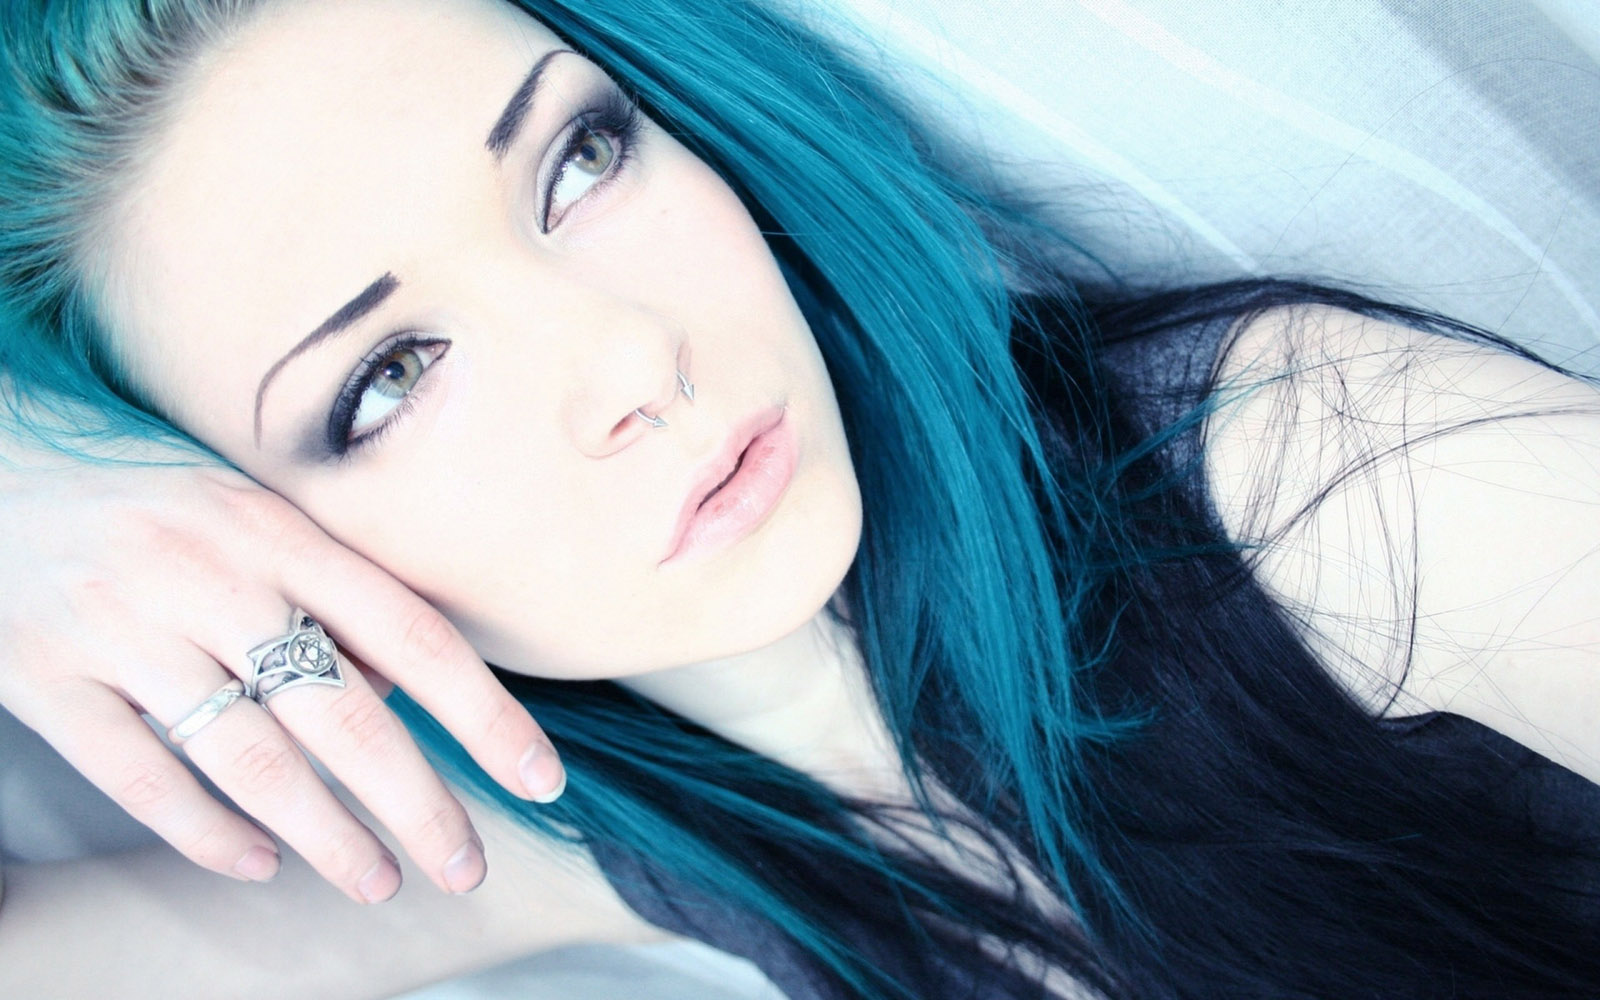 Cute Emo Girl HD Wallpaper   StylishHDWallpapers 1600x1000